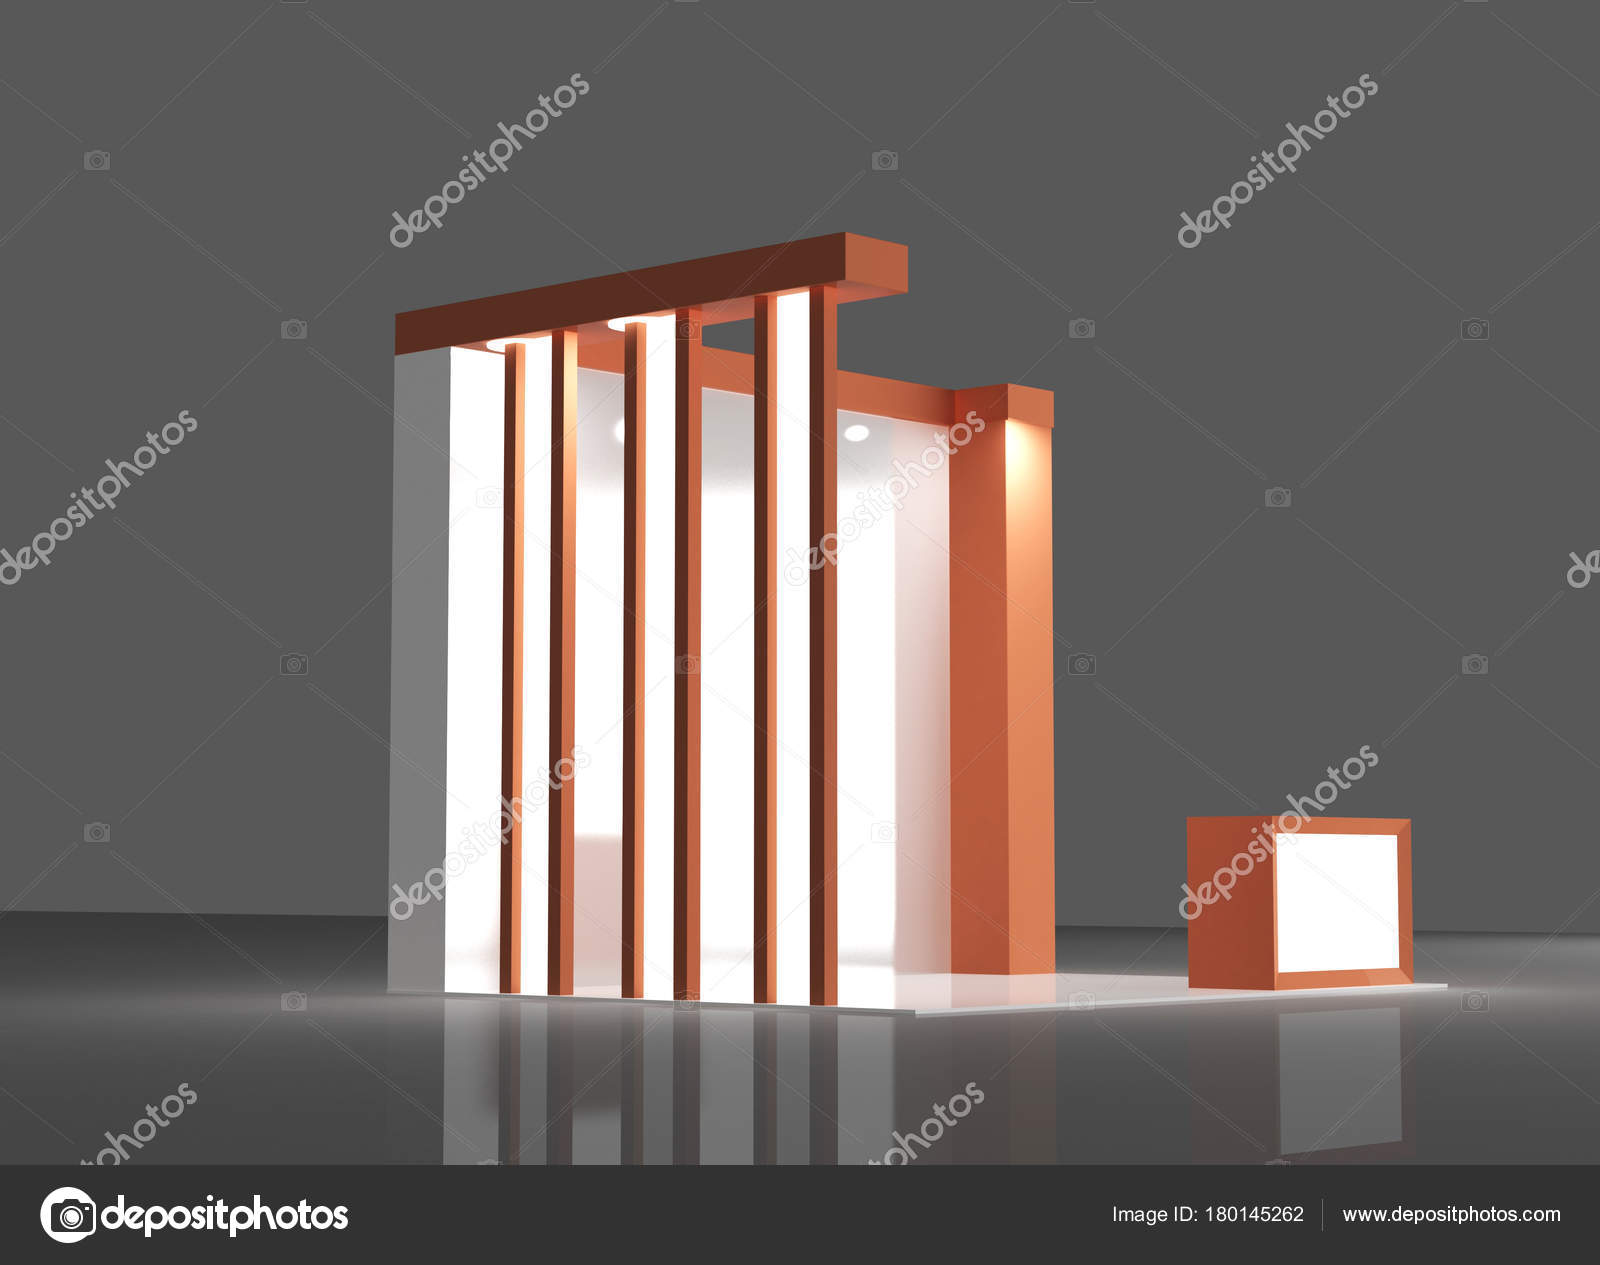 D Exhibition Stand Free Download : Red exhibition stand 3d rendering u2014 stock photo © klllane #180145262